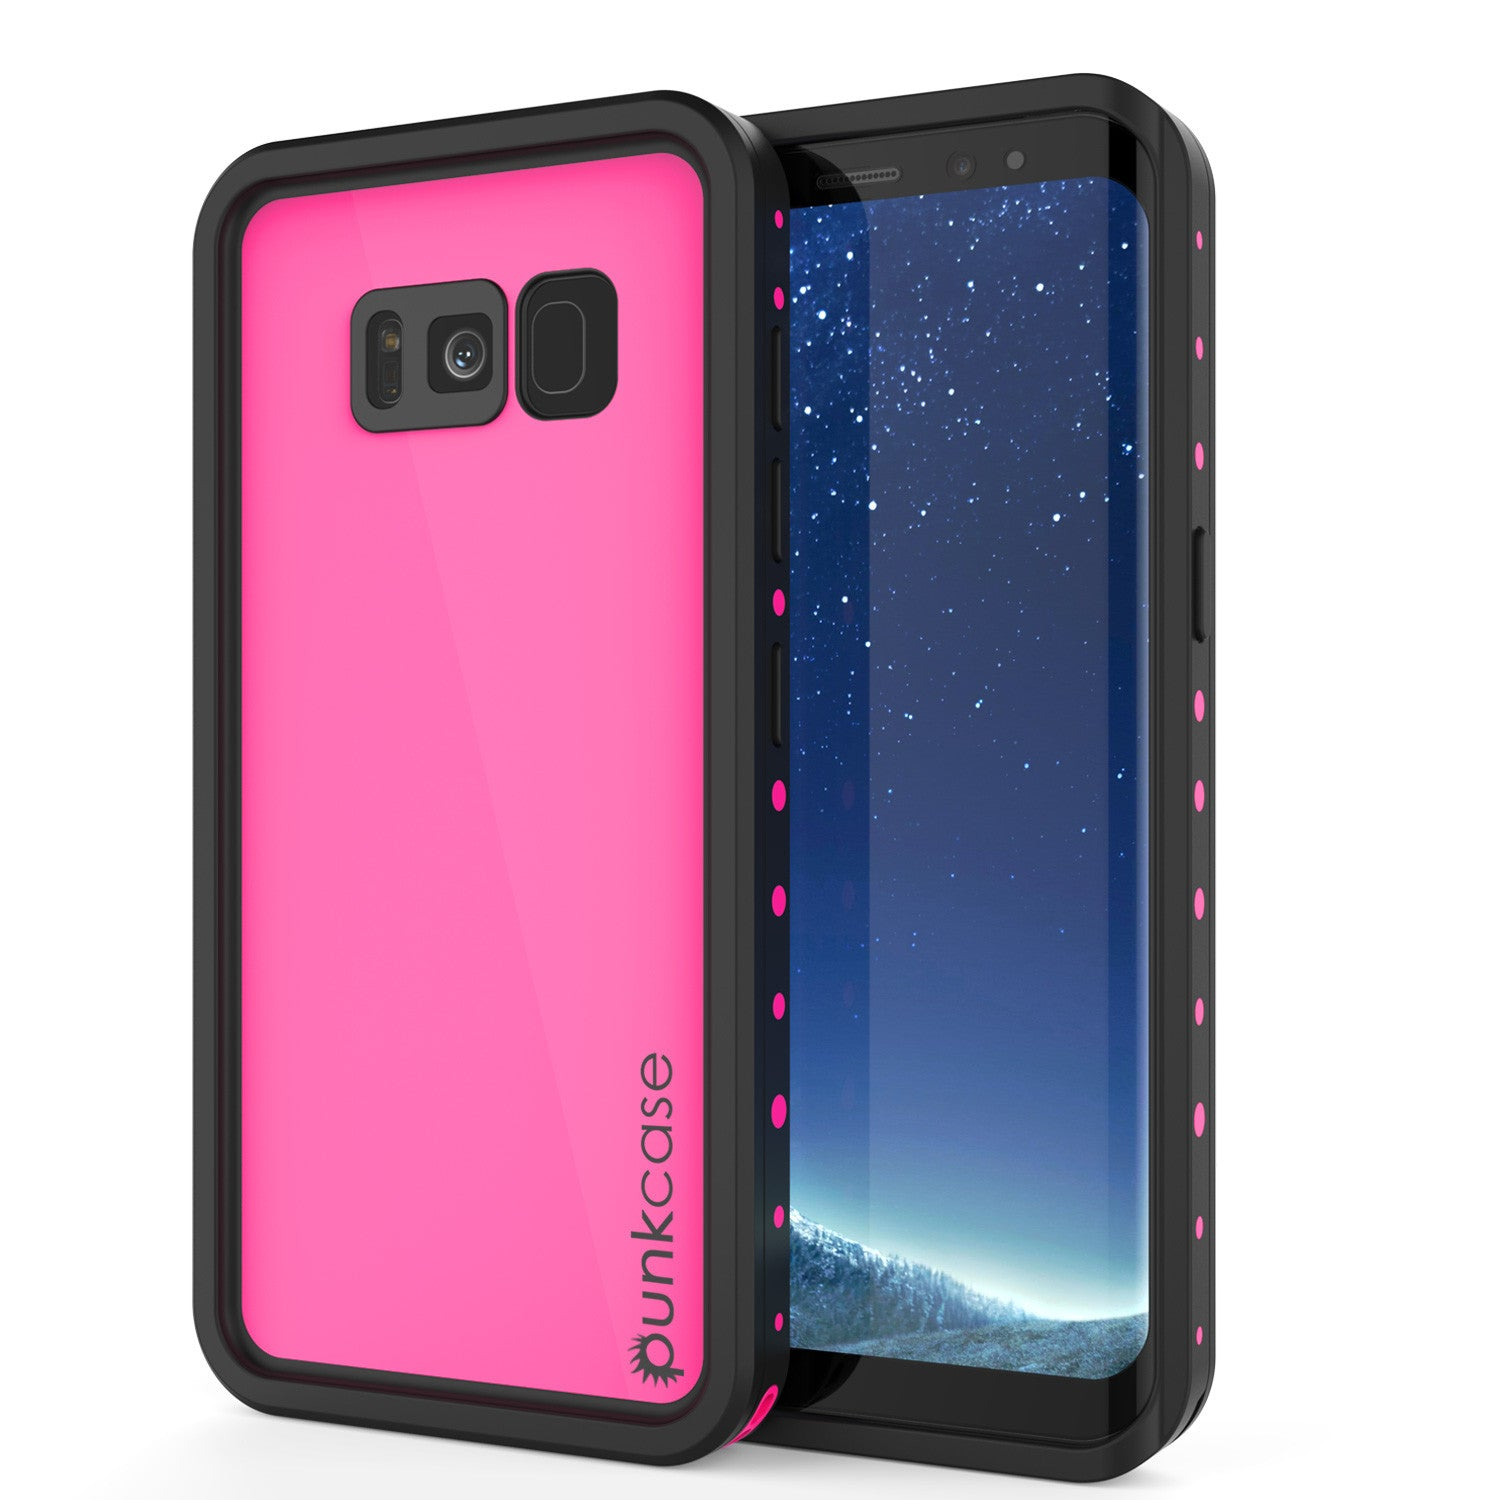 Galaxy S8 Plus Waterproof Case PunkCase StudStar Pink Thin 6.6ft Underwater IP68 Shock/Snow Proof